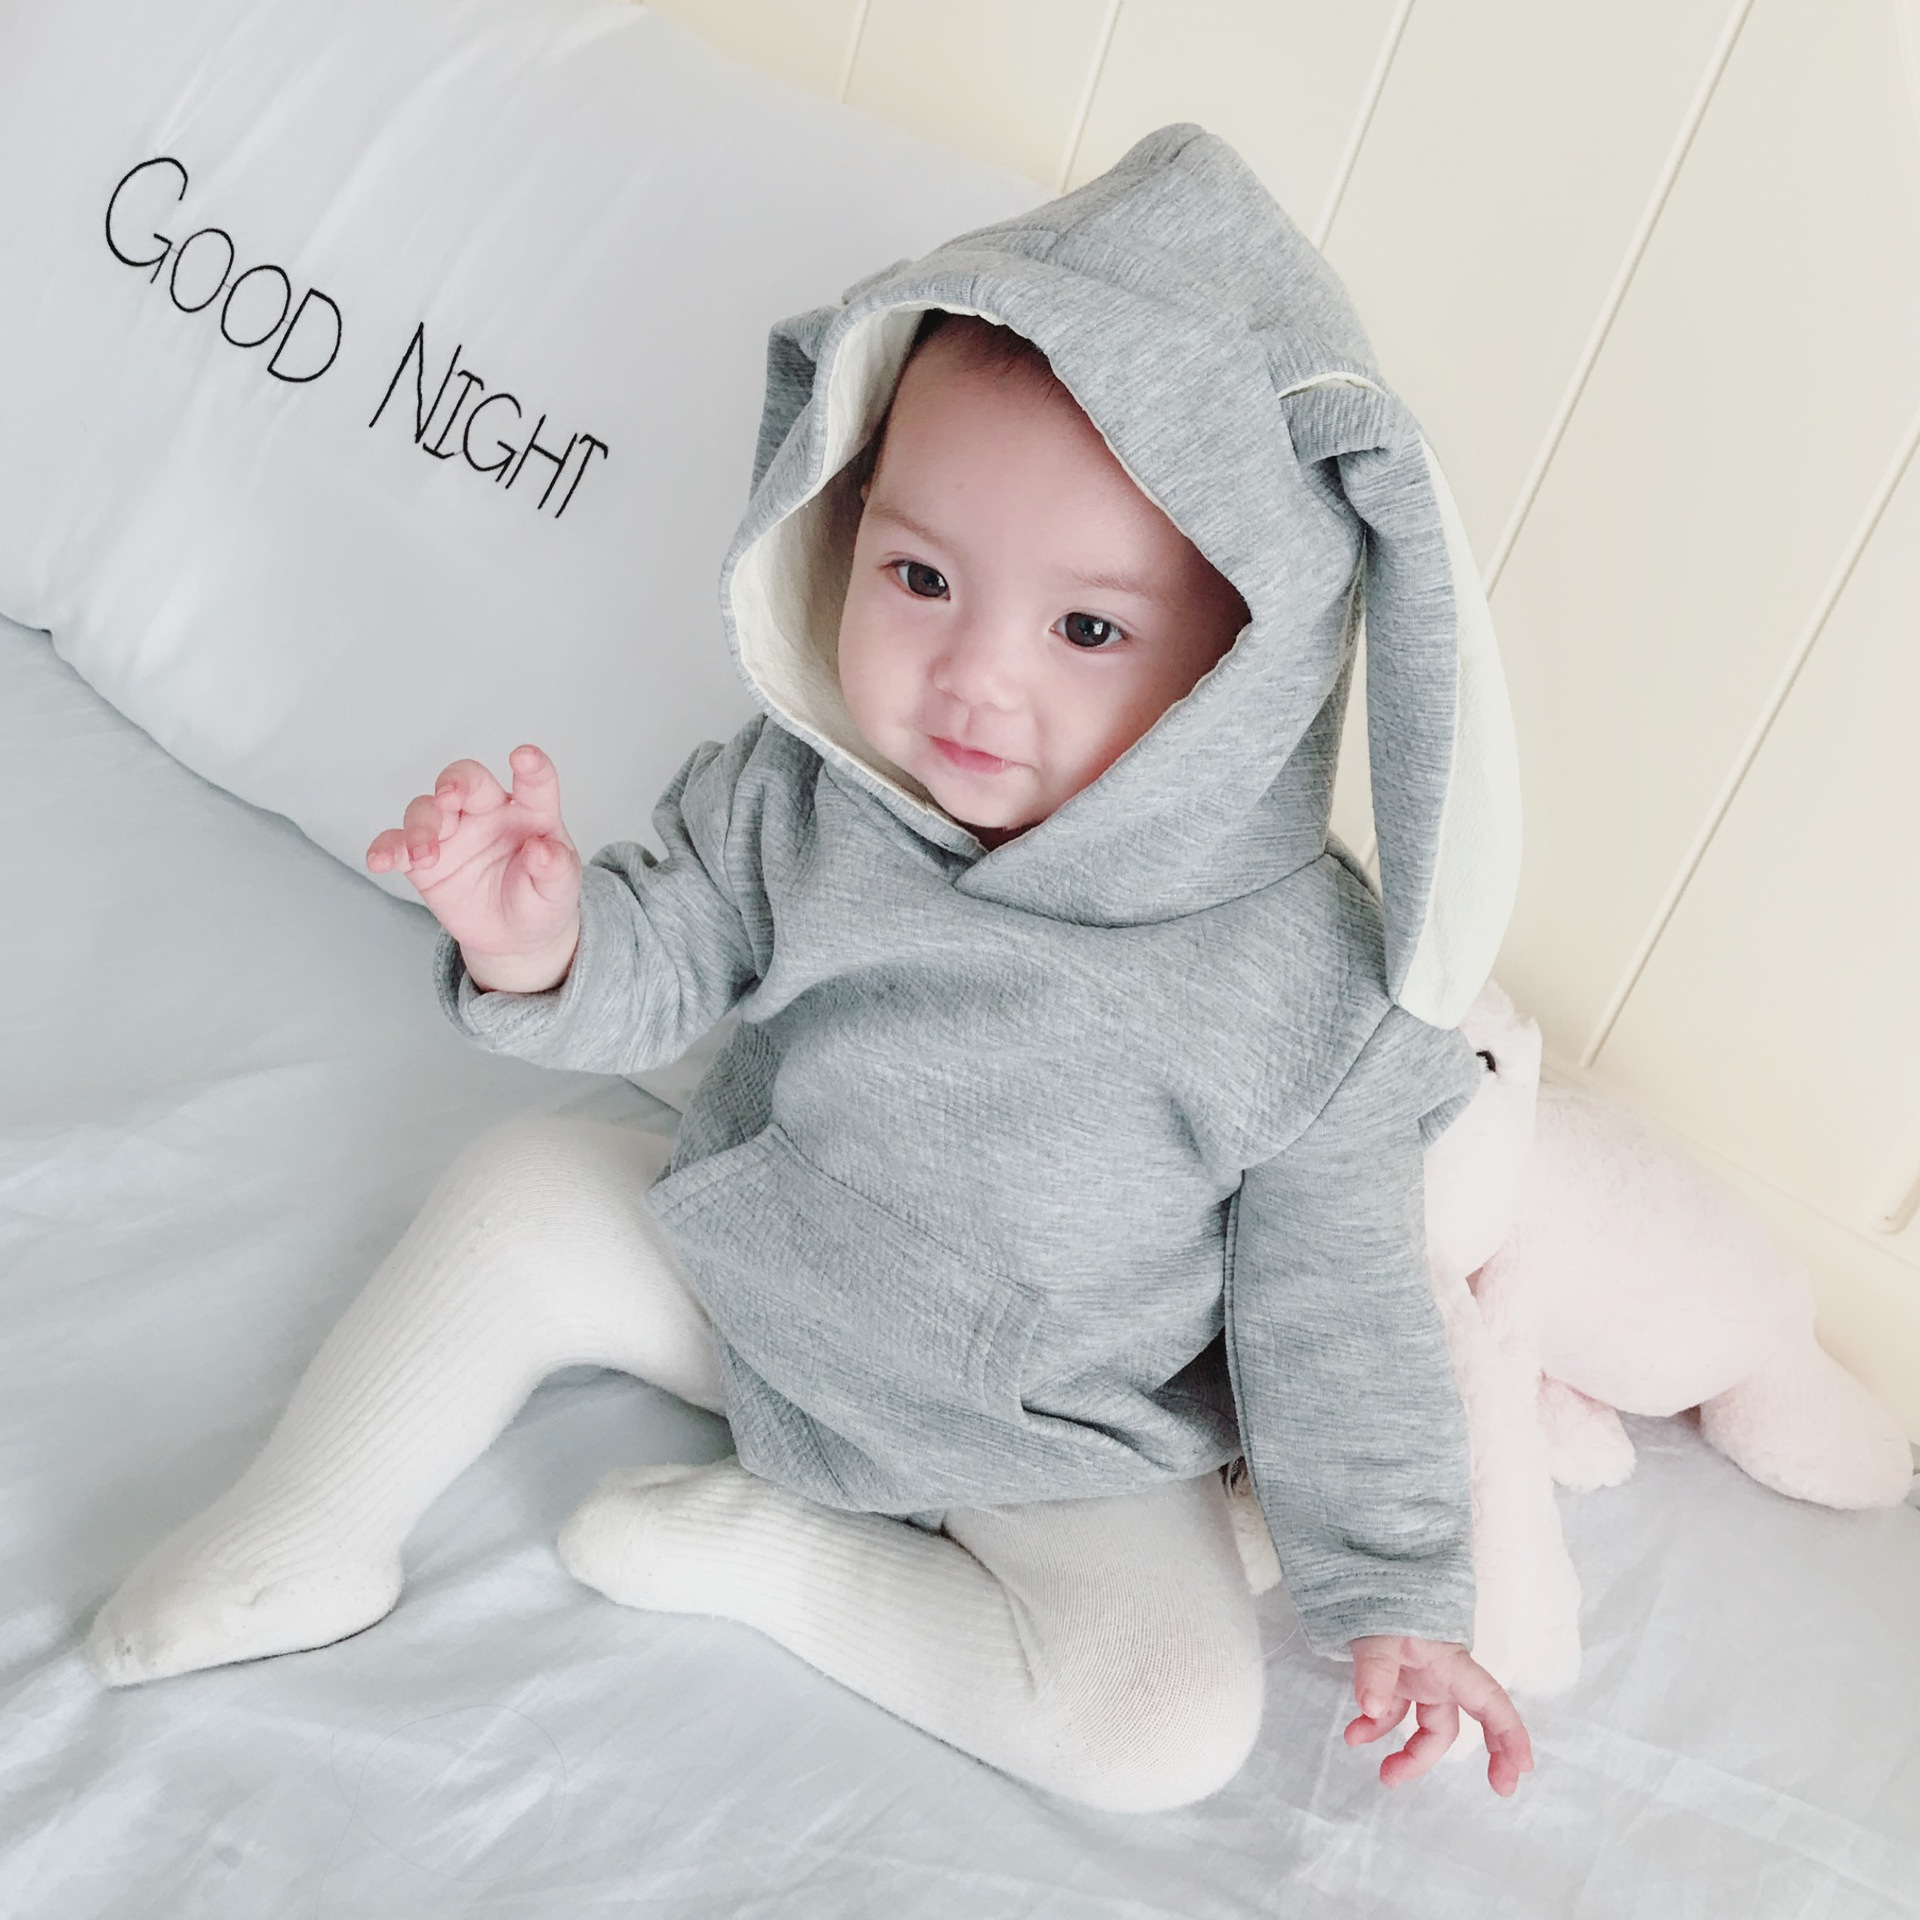 358220481a5d6 US $14.43 24% OFF|Baby Rabbit Stereoscopic Shape Of Children's Conjoined  Clothes Baby Girl Clothes Bodysuit Baby Body For Newborn Babys-in Bodysuits  ...